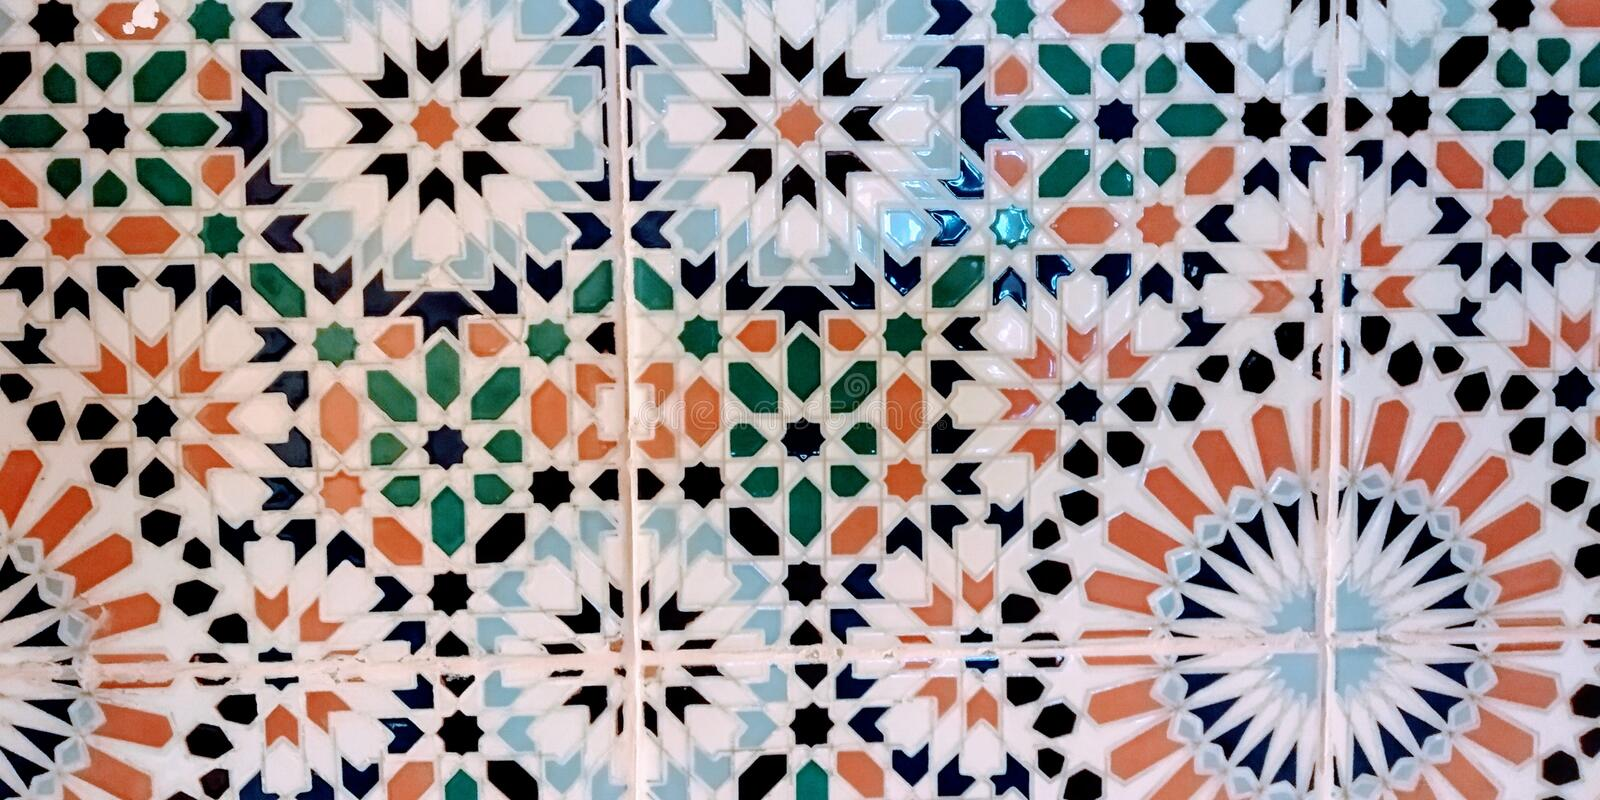 Morroccos Tile. royalty free stock images